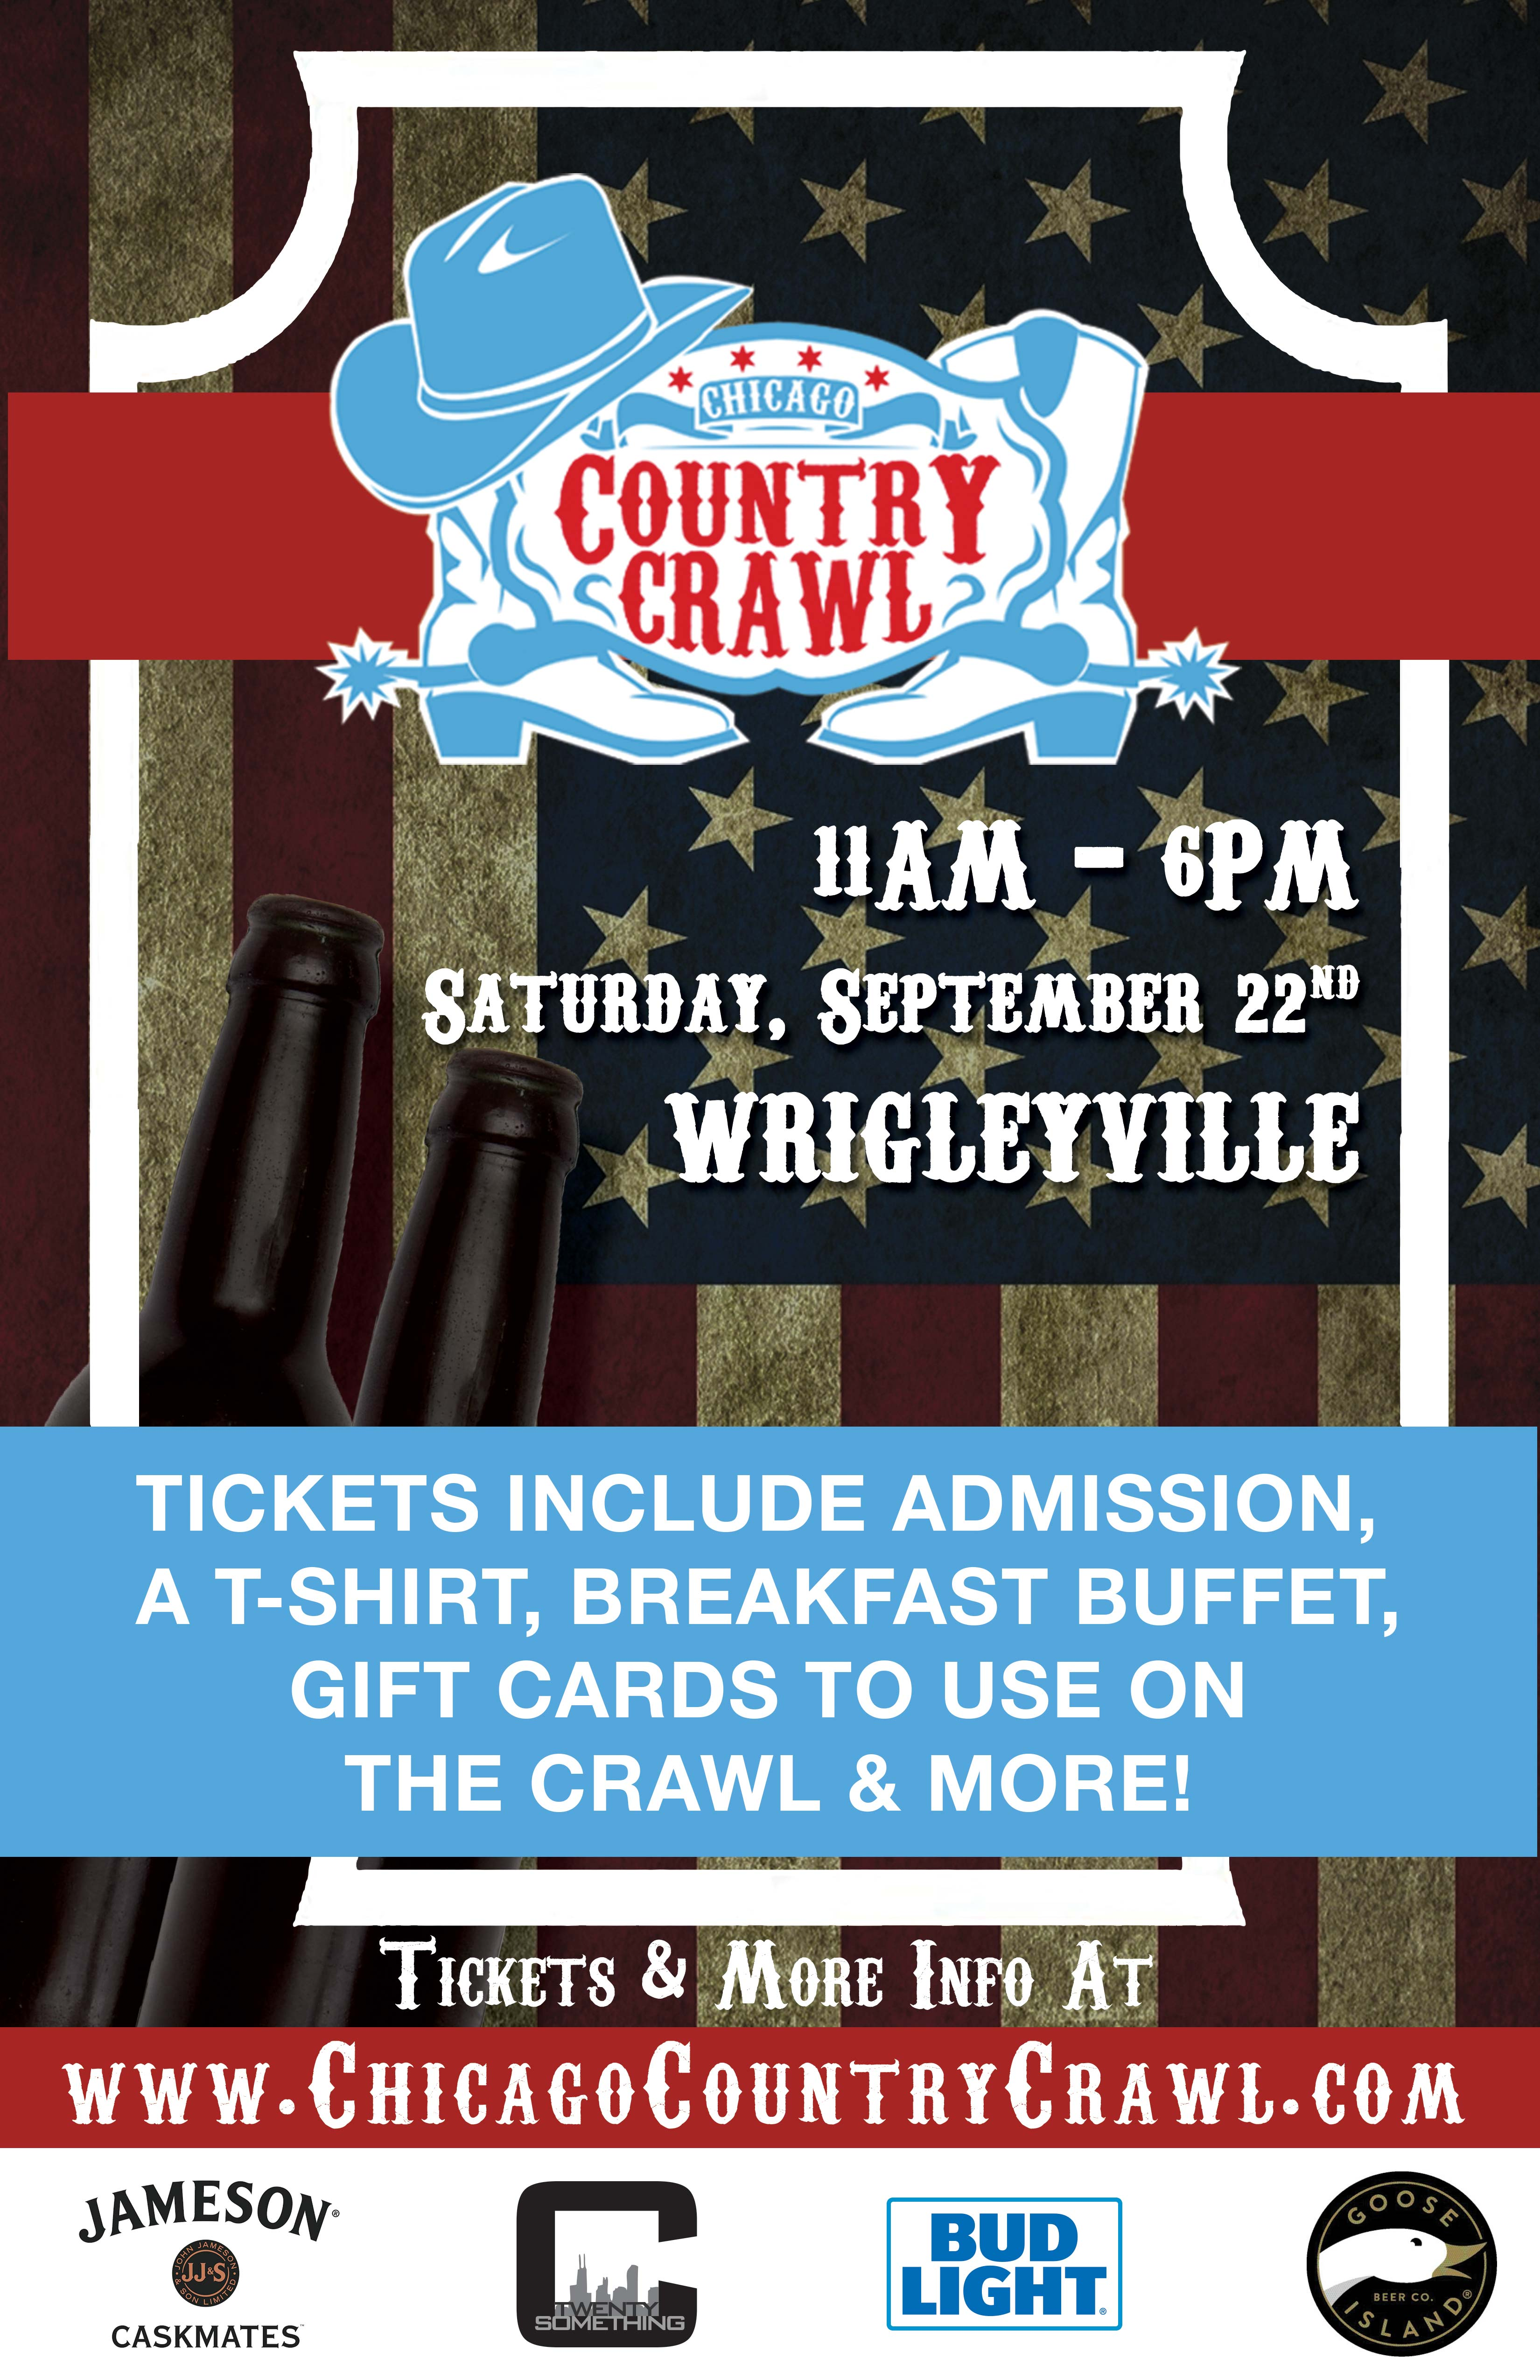 Chicago Country Crawl - Tickets include Admission, a T-Shirt, Breakfast Buffet, Gift Cards to use on the Crawl, one free admission to The Laugh Factory & MORE!